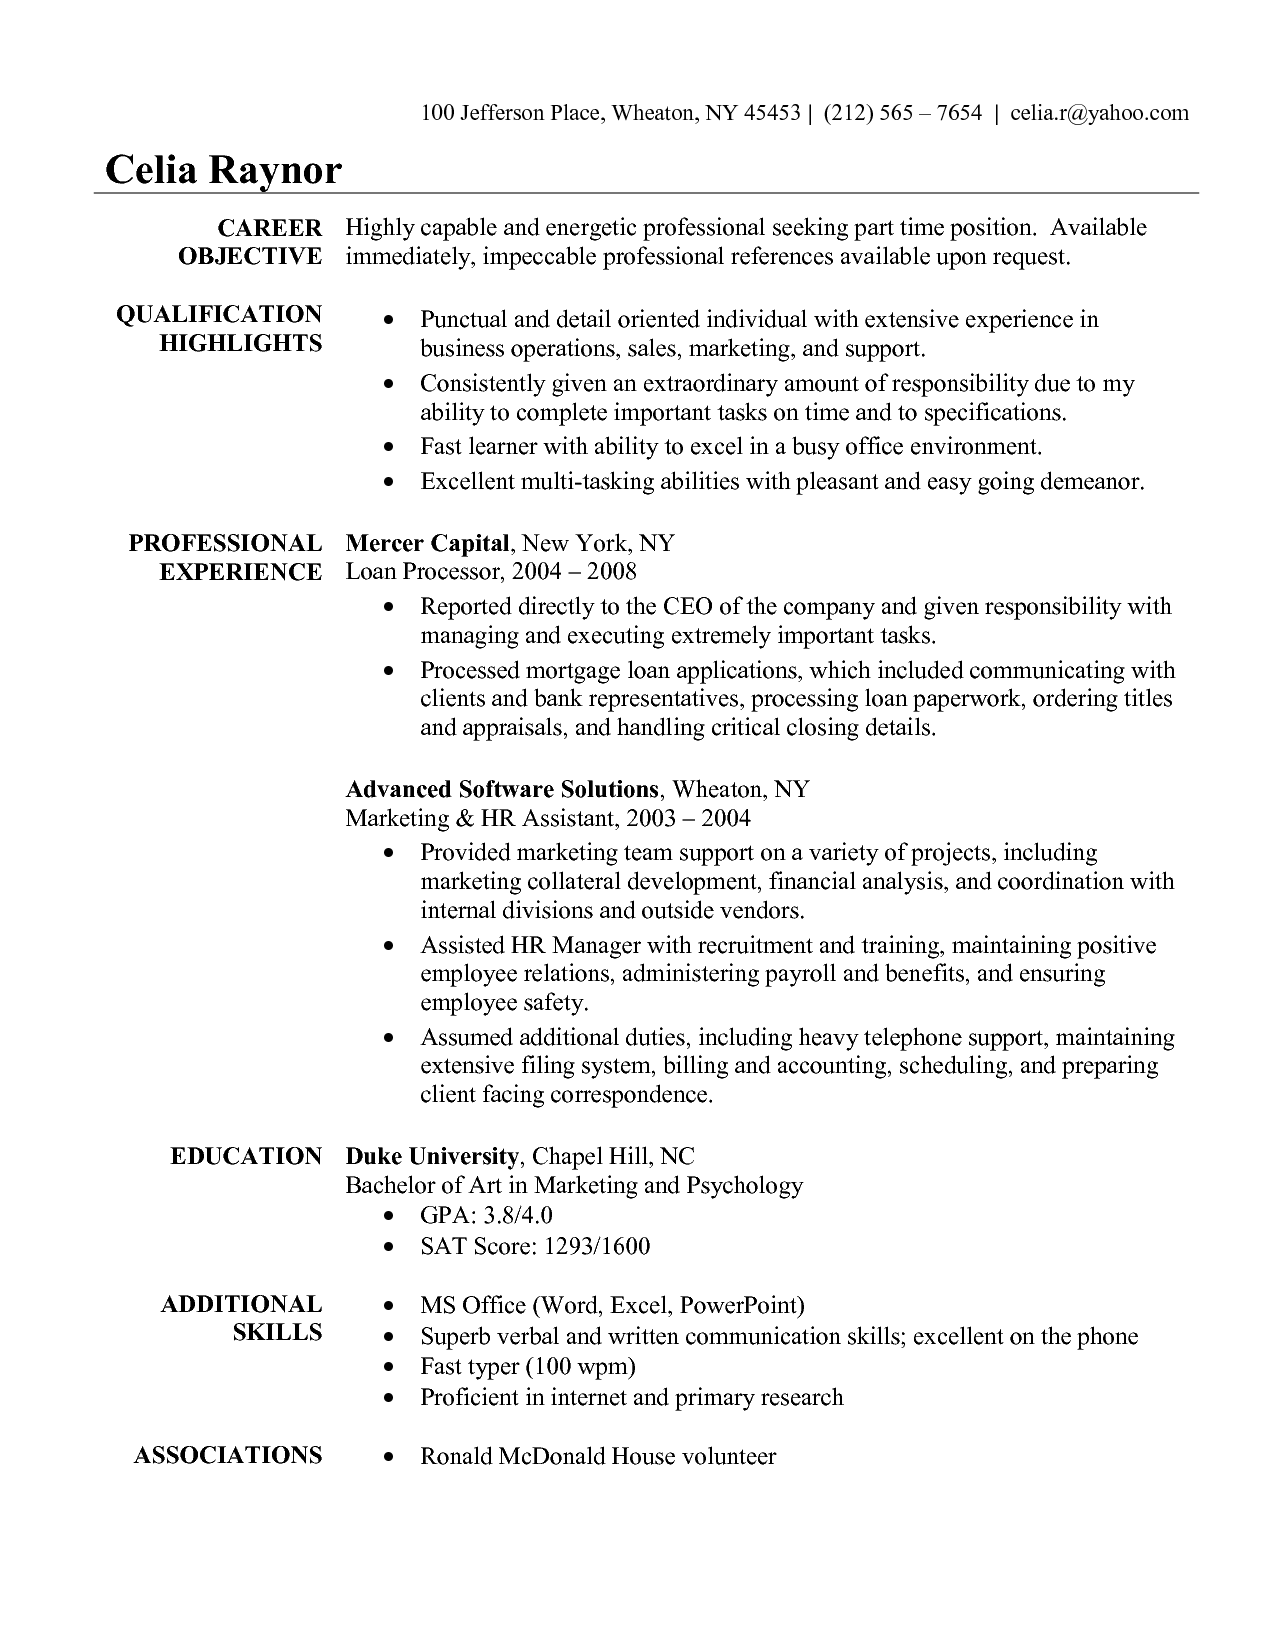 Administrative Secretary Resume Impressive Resume Sample For Administrative Assistant Resume Samples For .